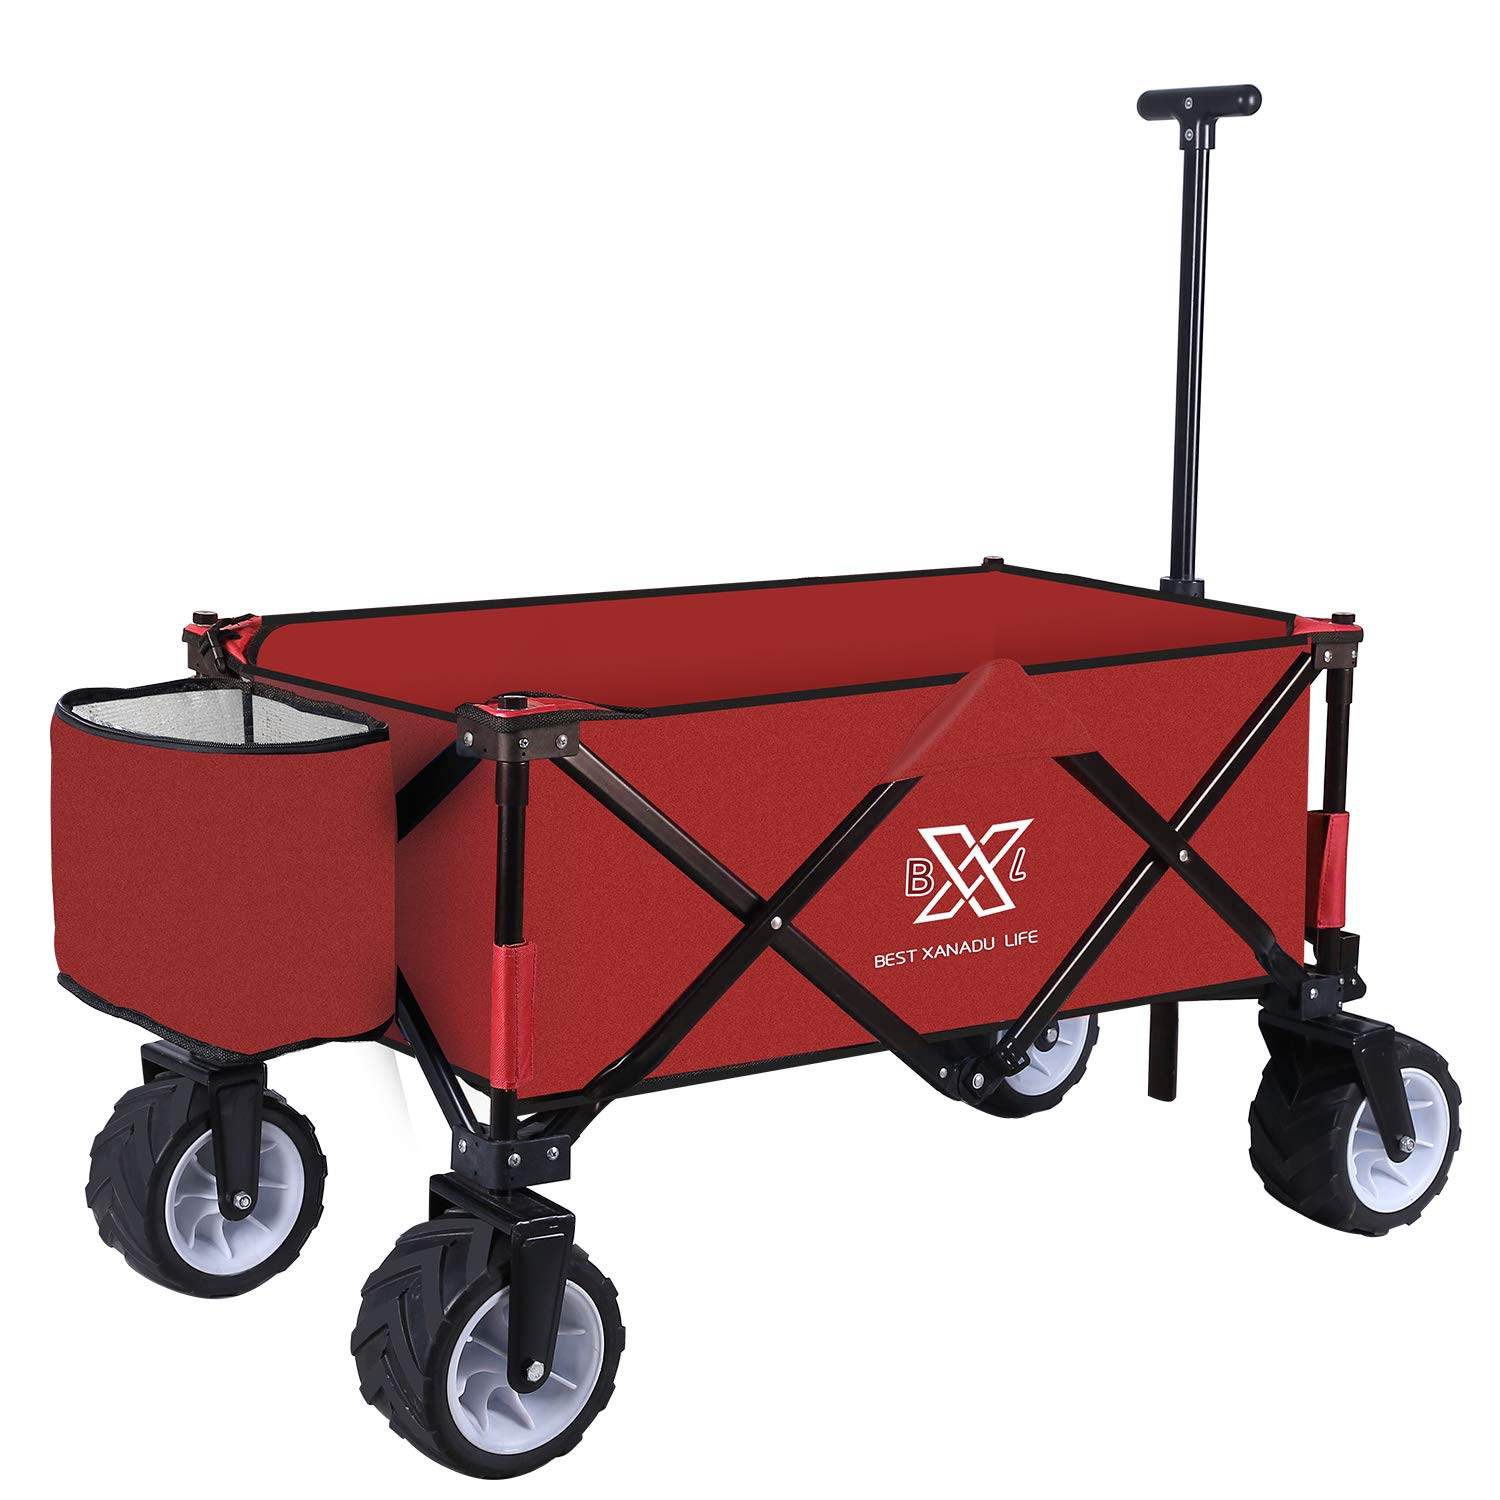 BXL Heavy Duty Collapsible Folding Garden Cart Utility Wagon for Shopping Outdoors Red